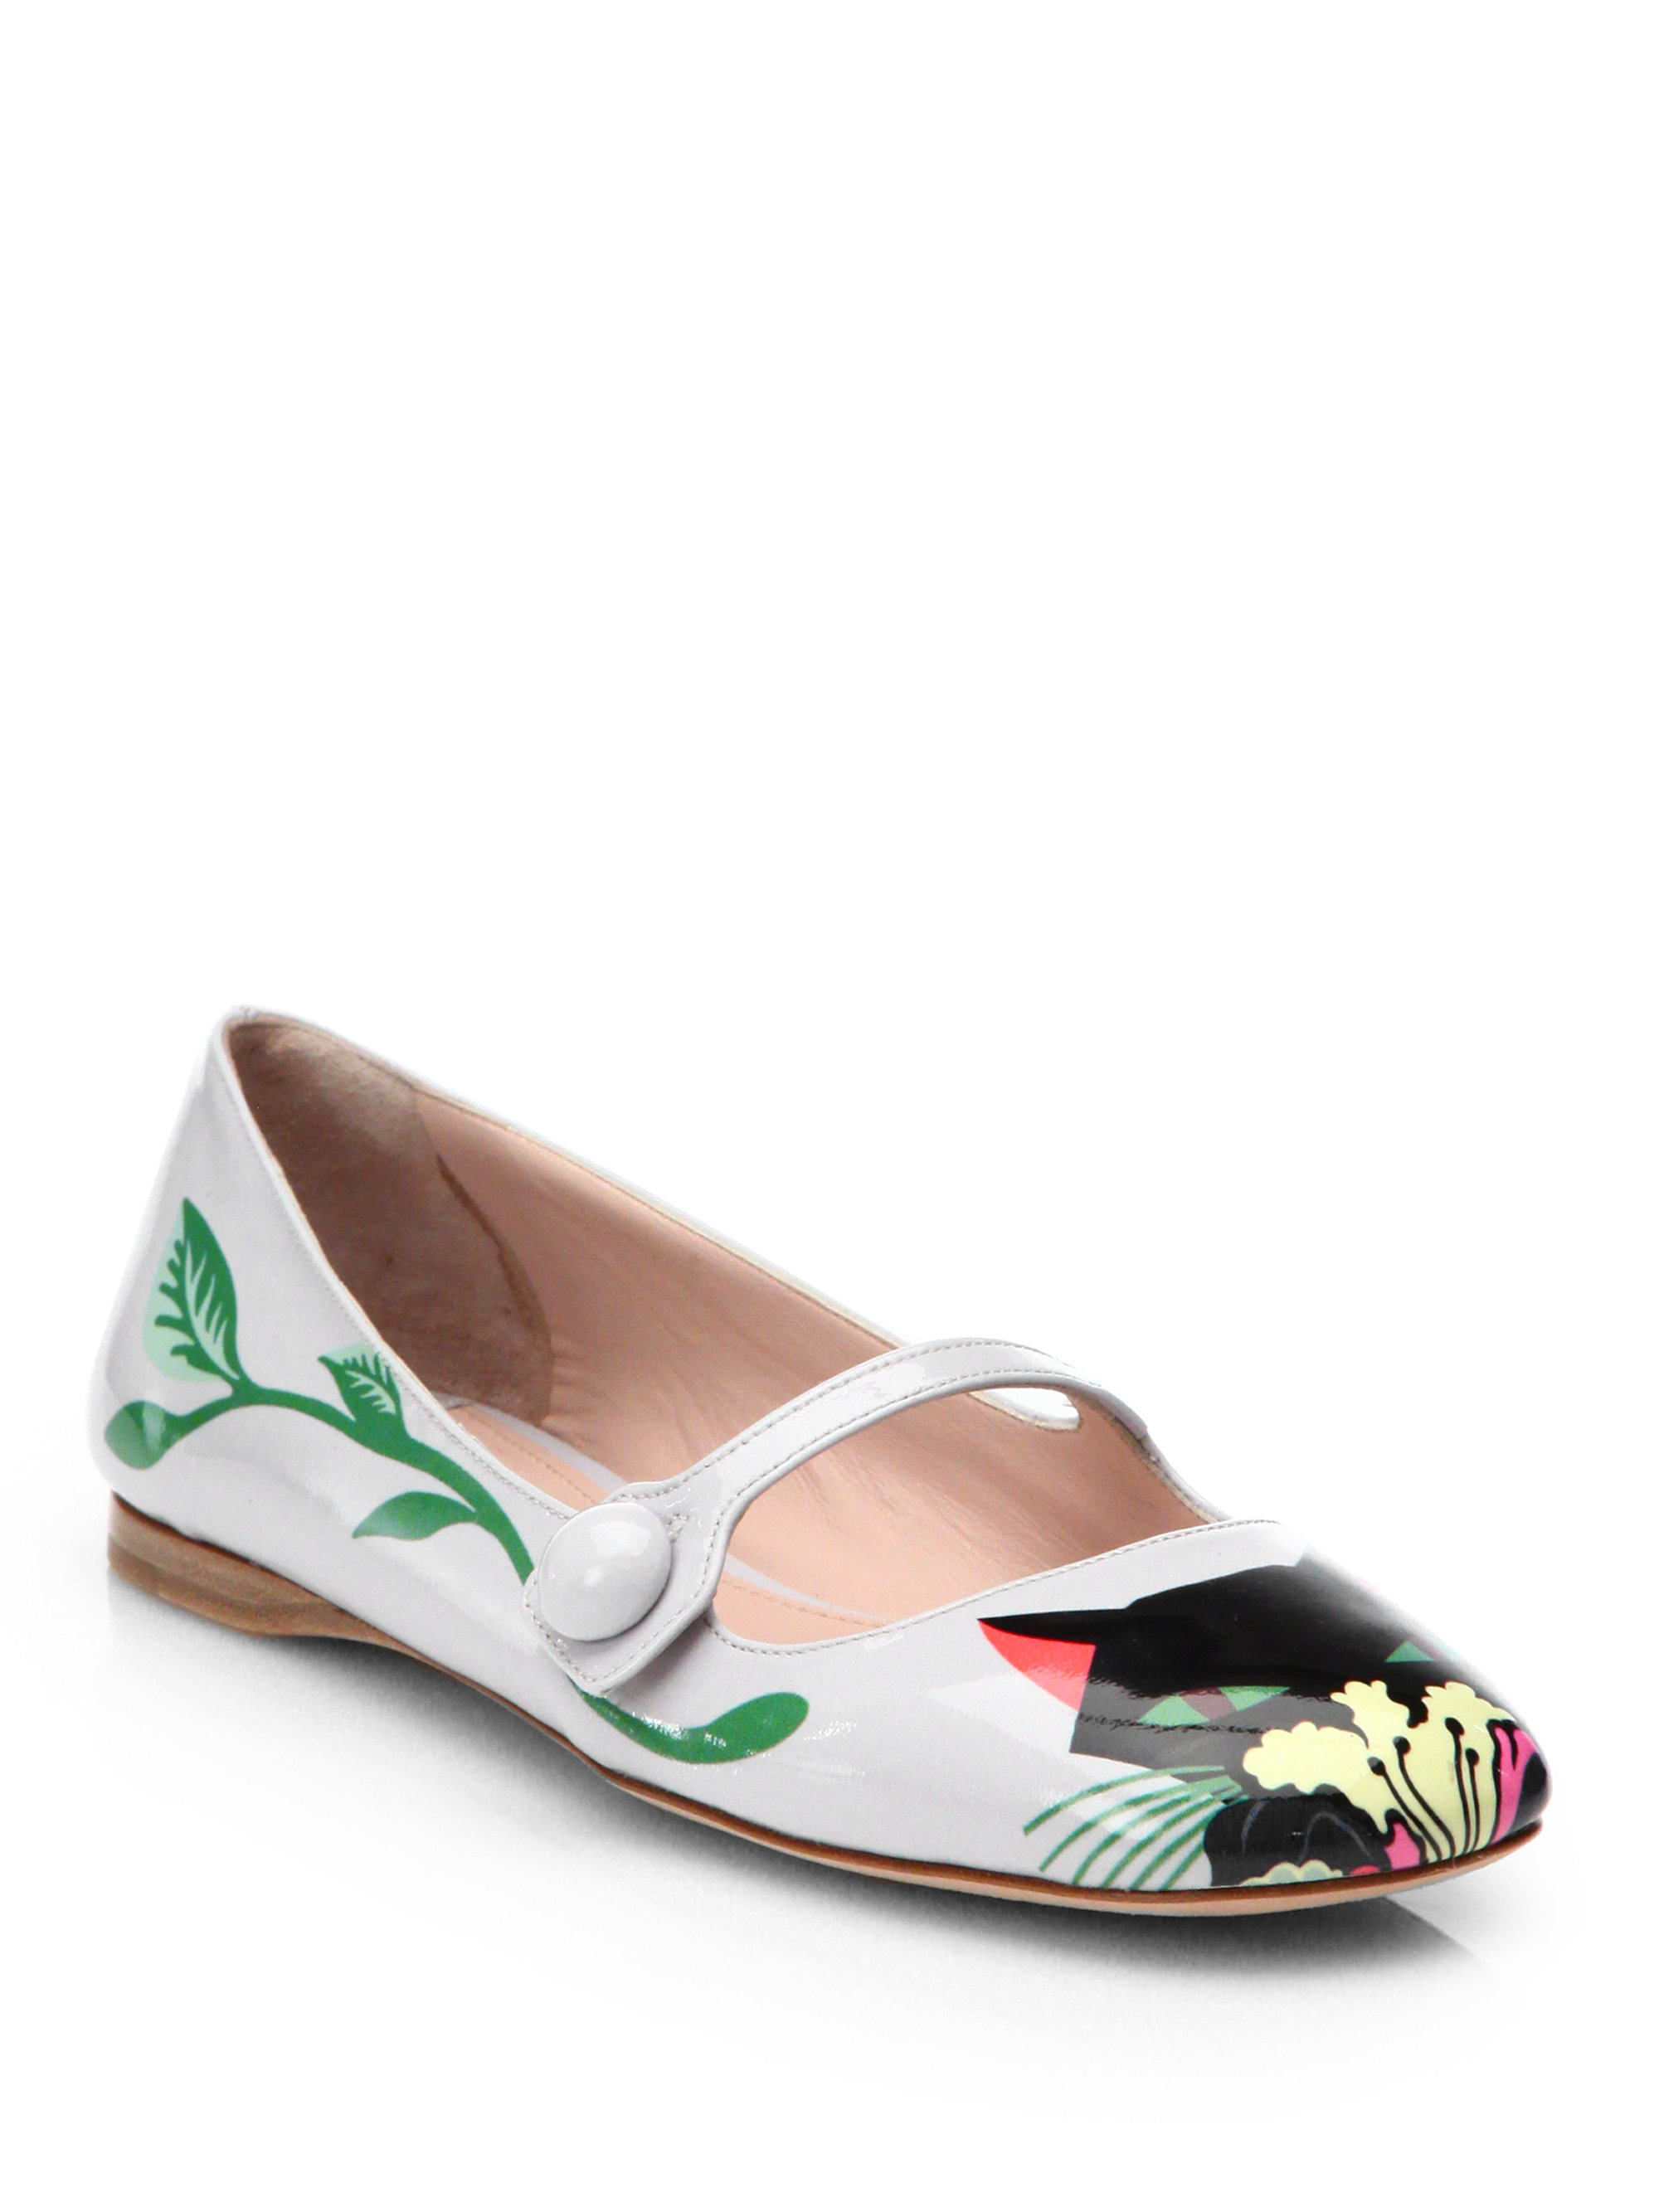 sale exclusive Miu Miu Satin Cat Flats free shipping eastbay cheap sale with mastercard outlet browse deals sale online L3BuNgkSYD